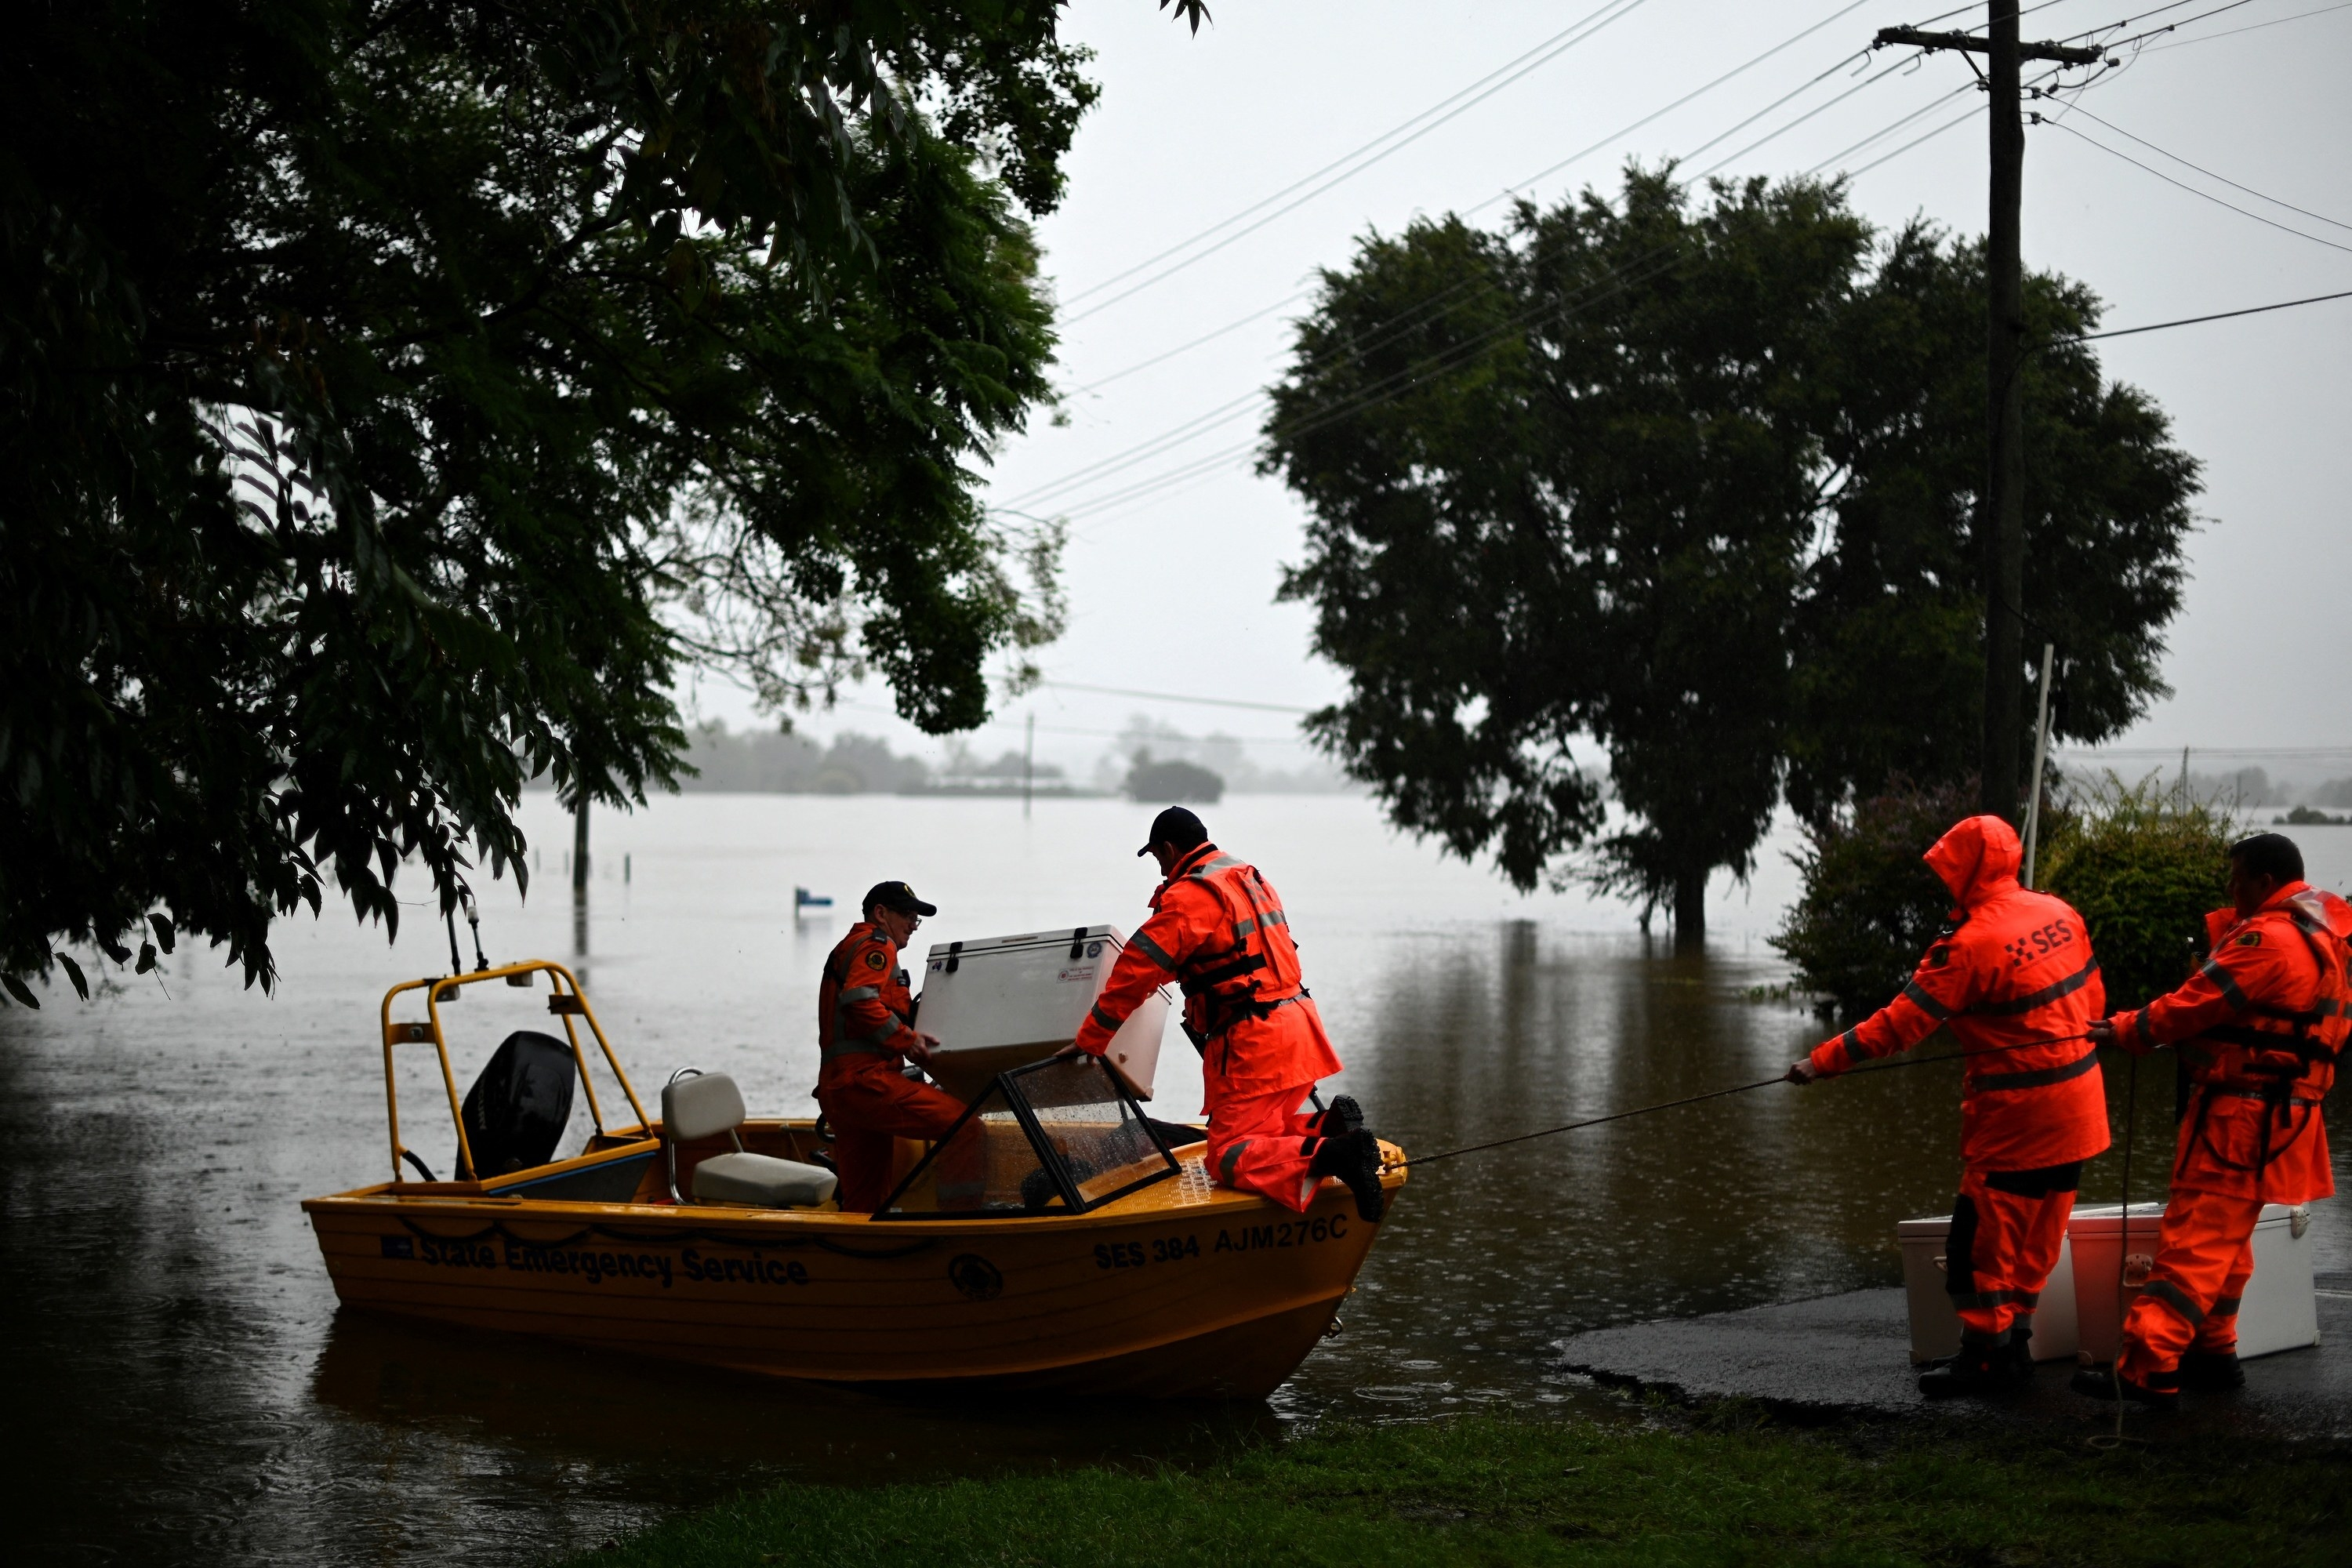 Four men in dry suits hold a boat in place and lift a cooler off of the boat in a flooded area